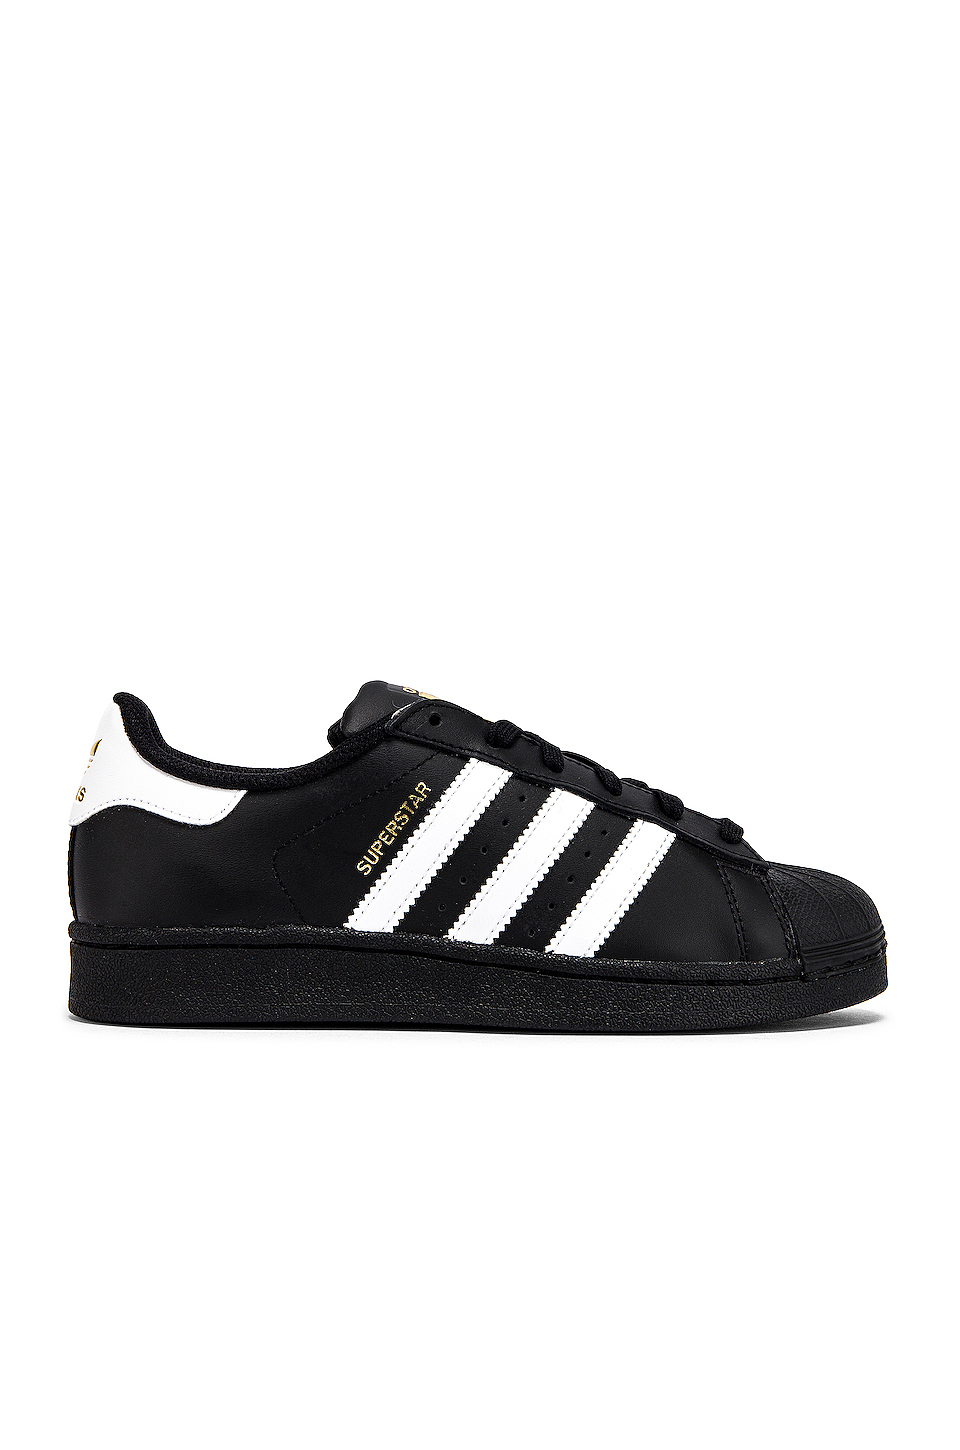 Superstar Foundation Sneaker, adidas Originals